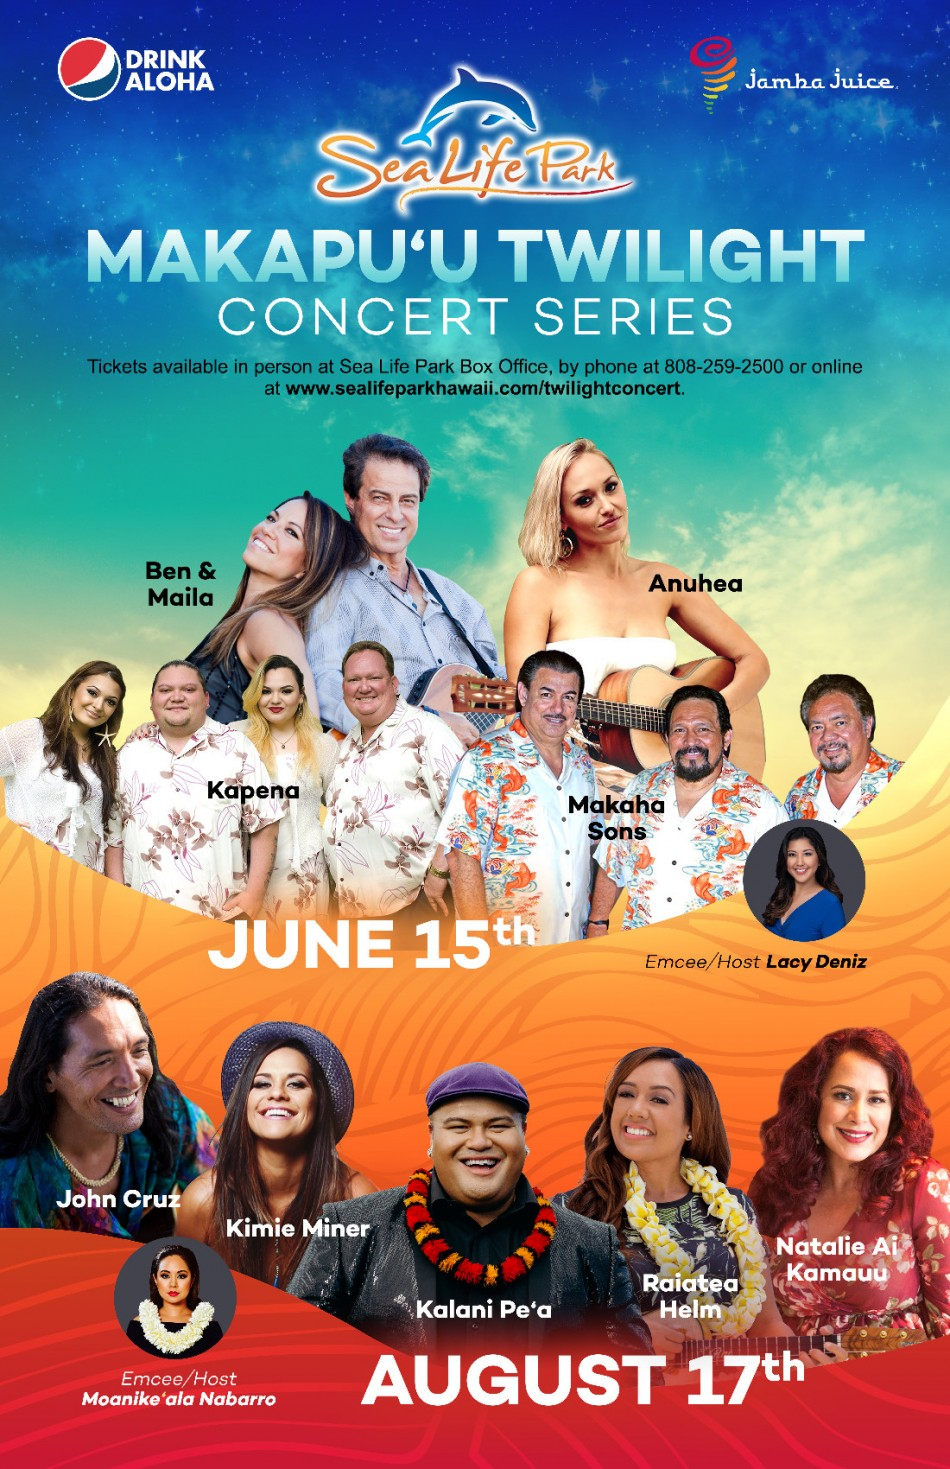 SEA LIFE PARK SETS THE STAGE FOR MAKAPU`U TWILIGHT CONCERT SERIES 2019